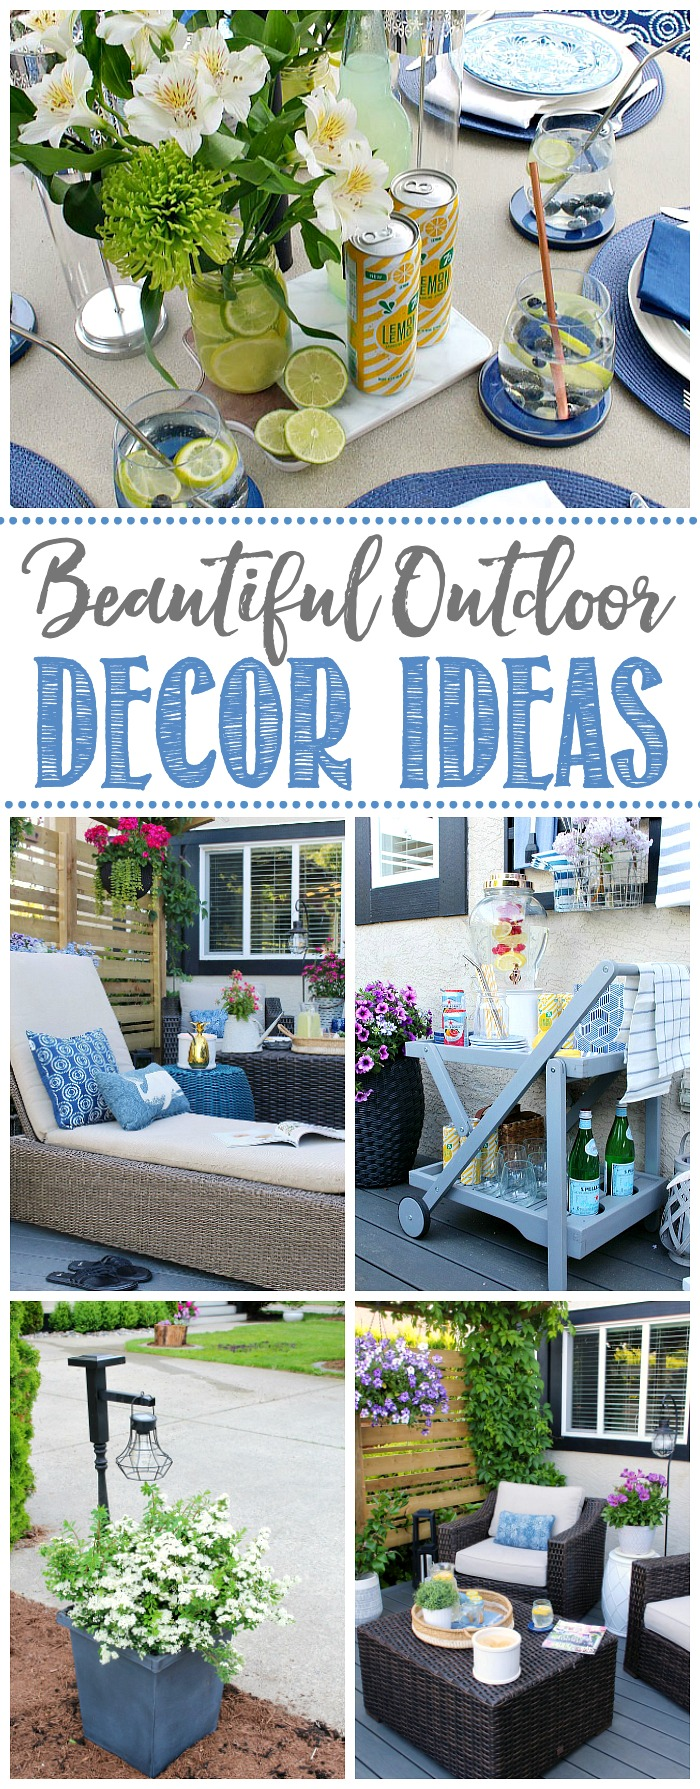 Collage of beautiful outdoor decor ideas.